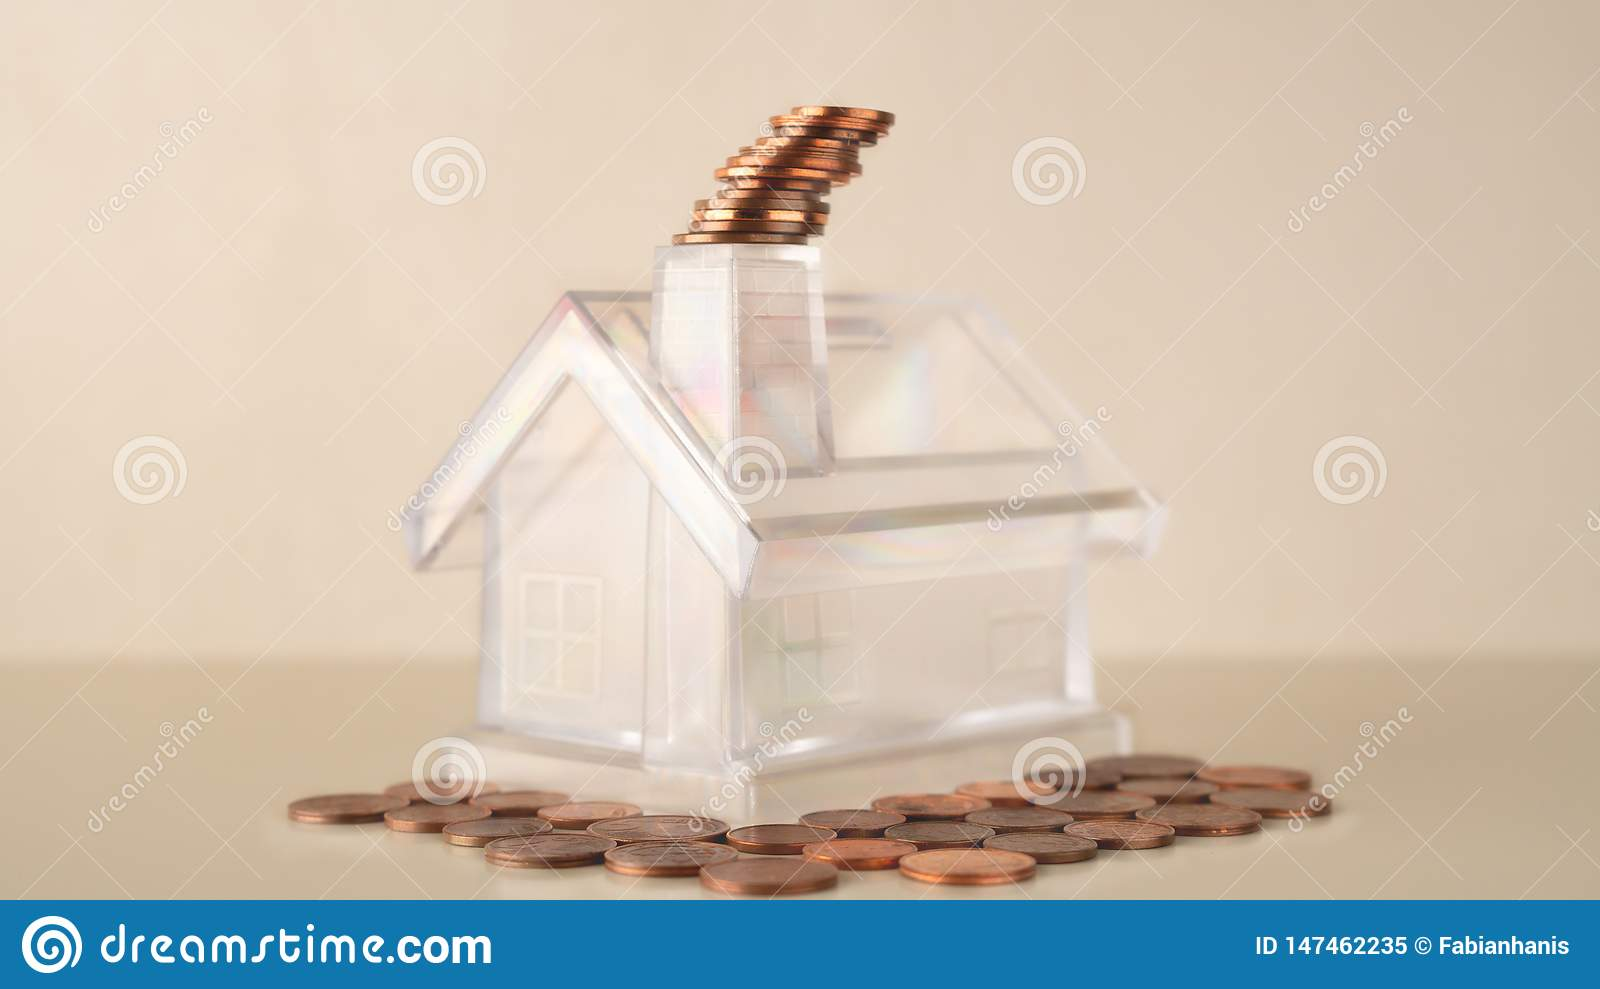 Piggy bank white transparent house with chimney, coins stack smoke, management business financial and investment, flat coins botto